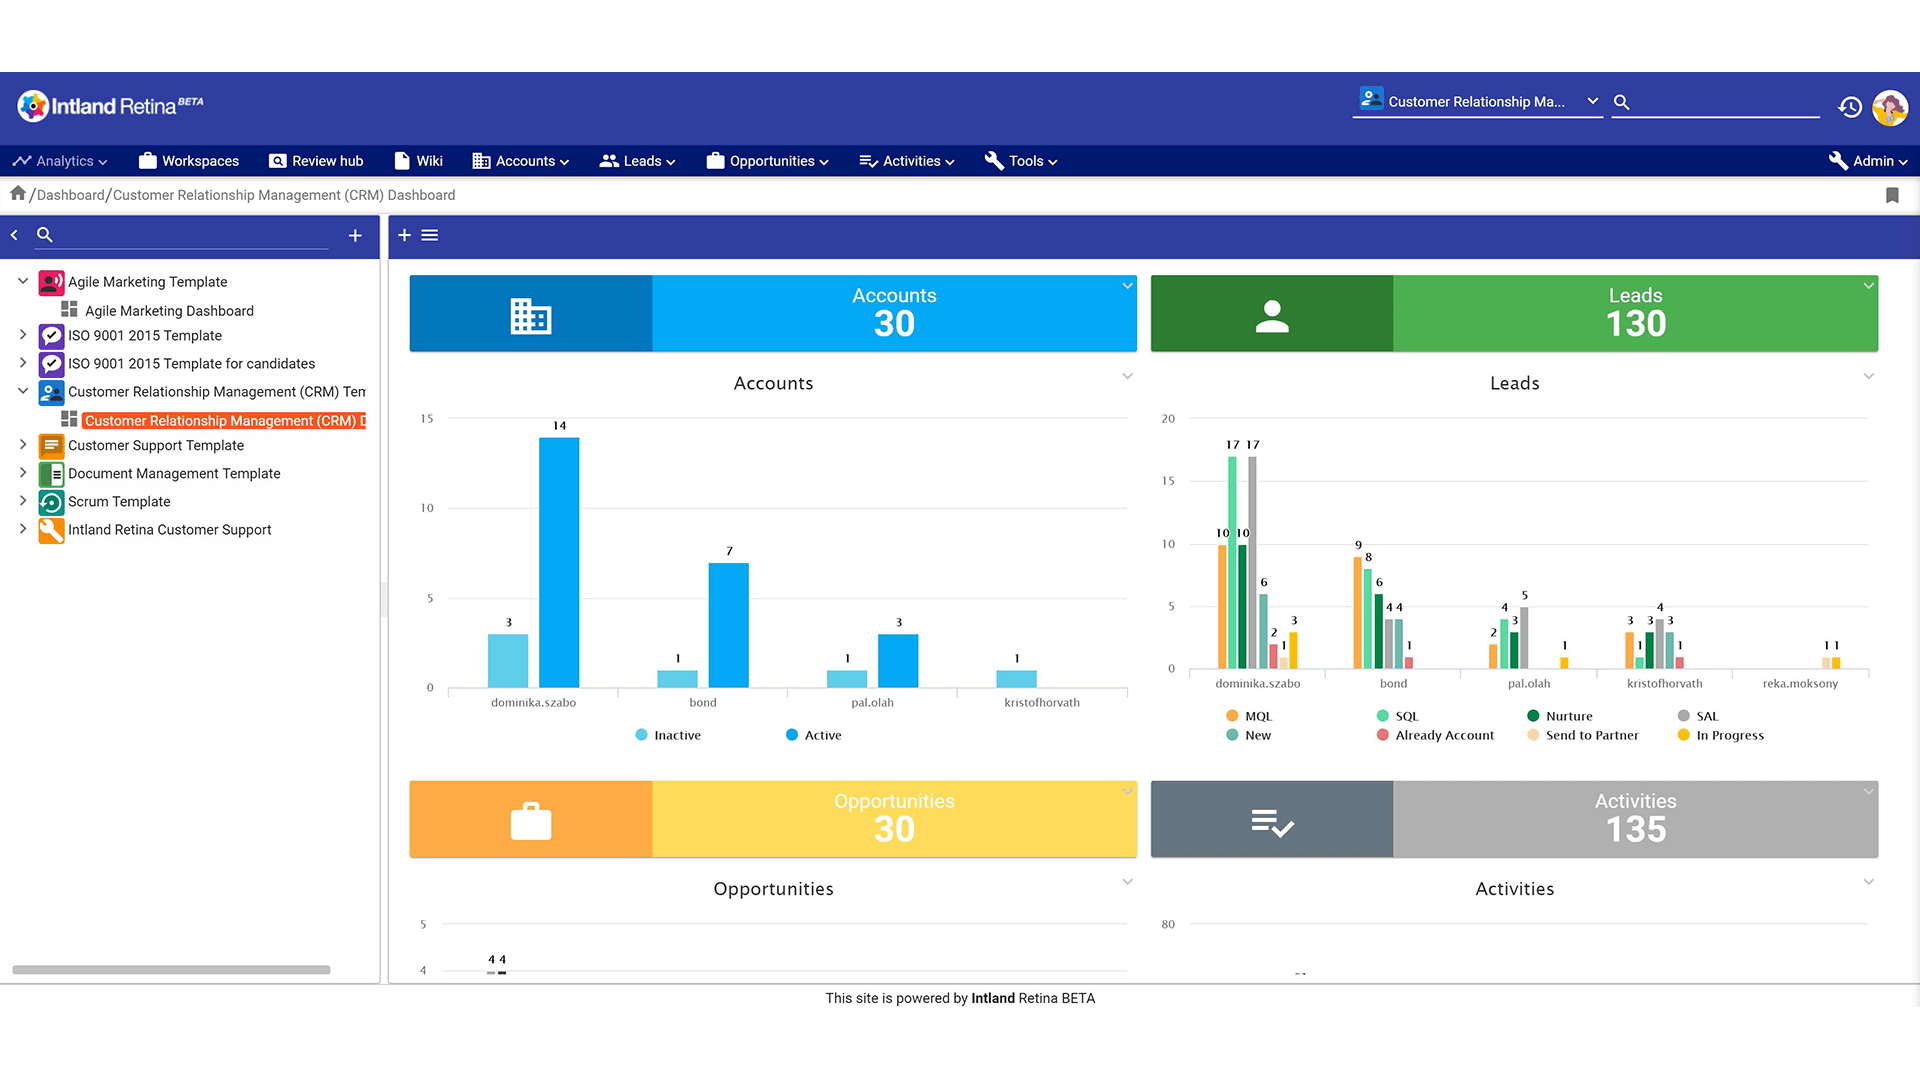 analytics-dashboards-management-overview-all-workspace-data Intland Retina